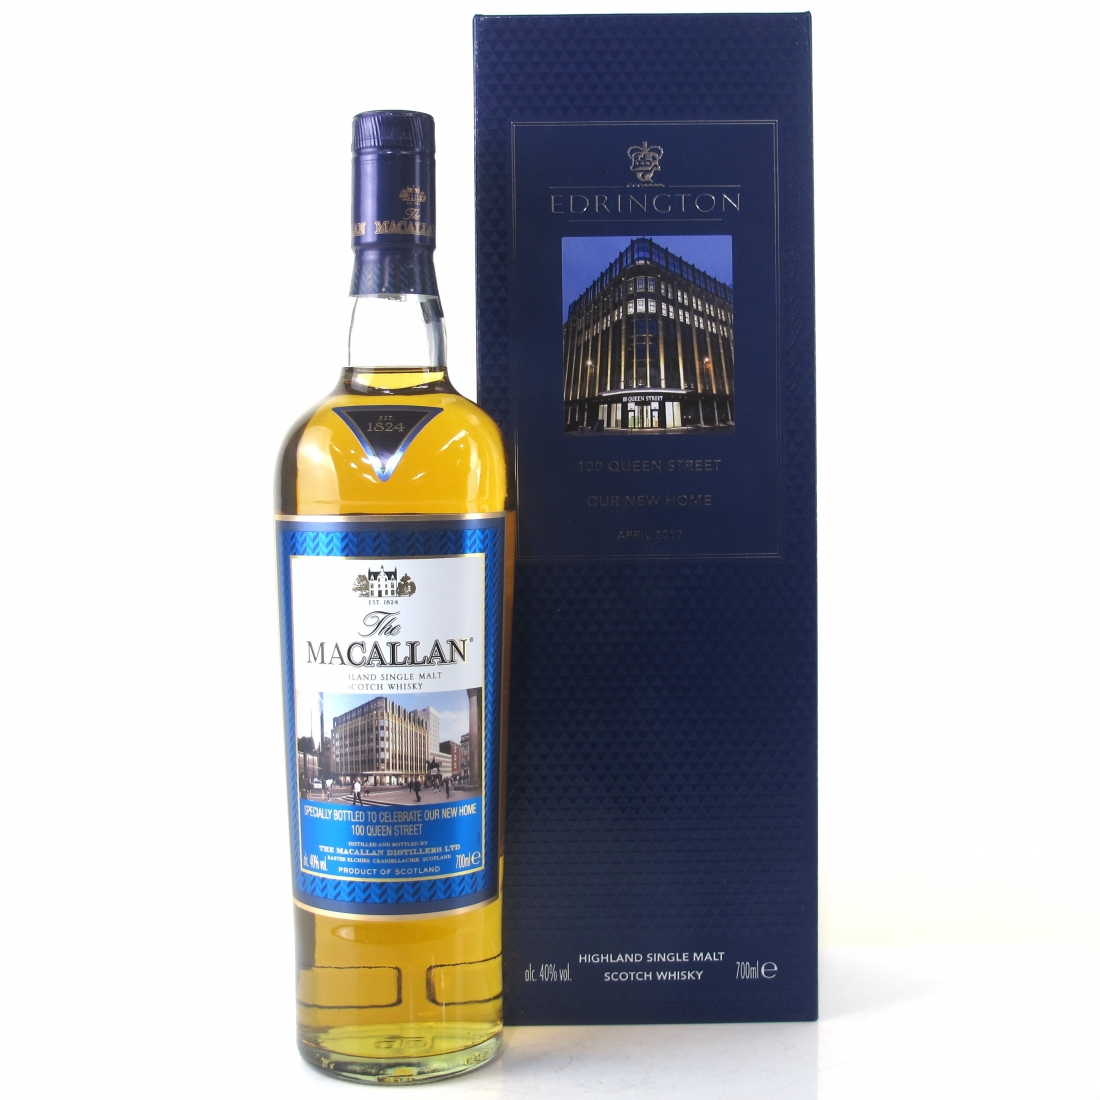 Macallan / Edrington 100 Queen Street